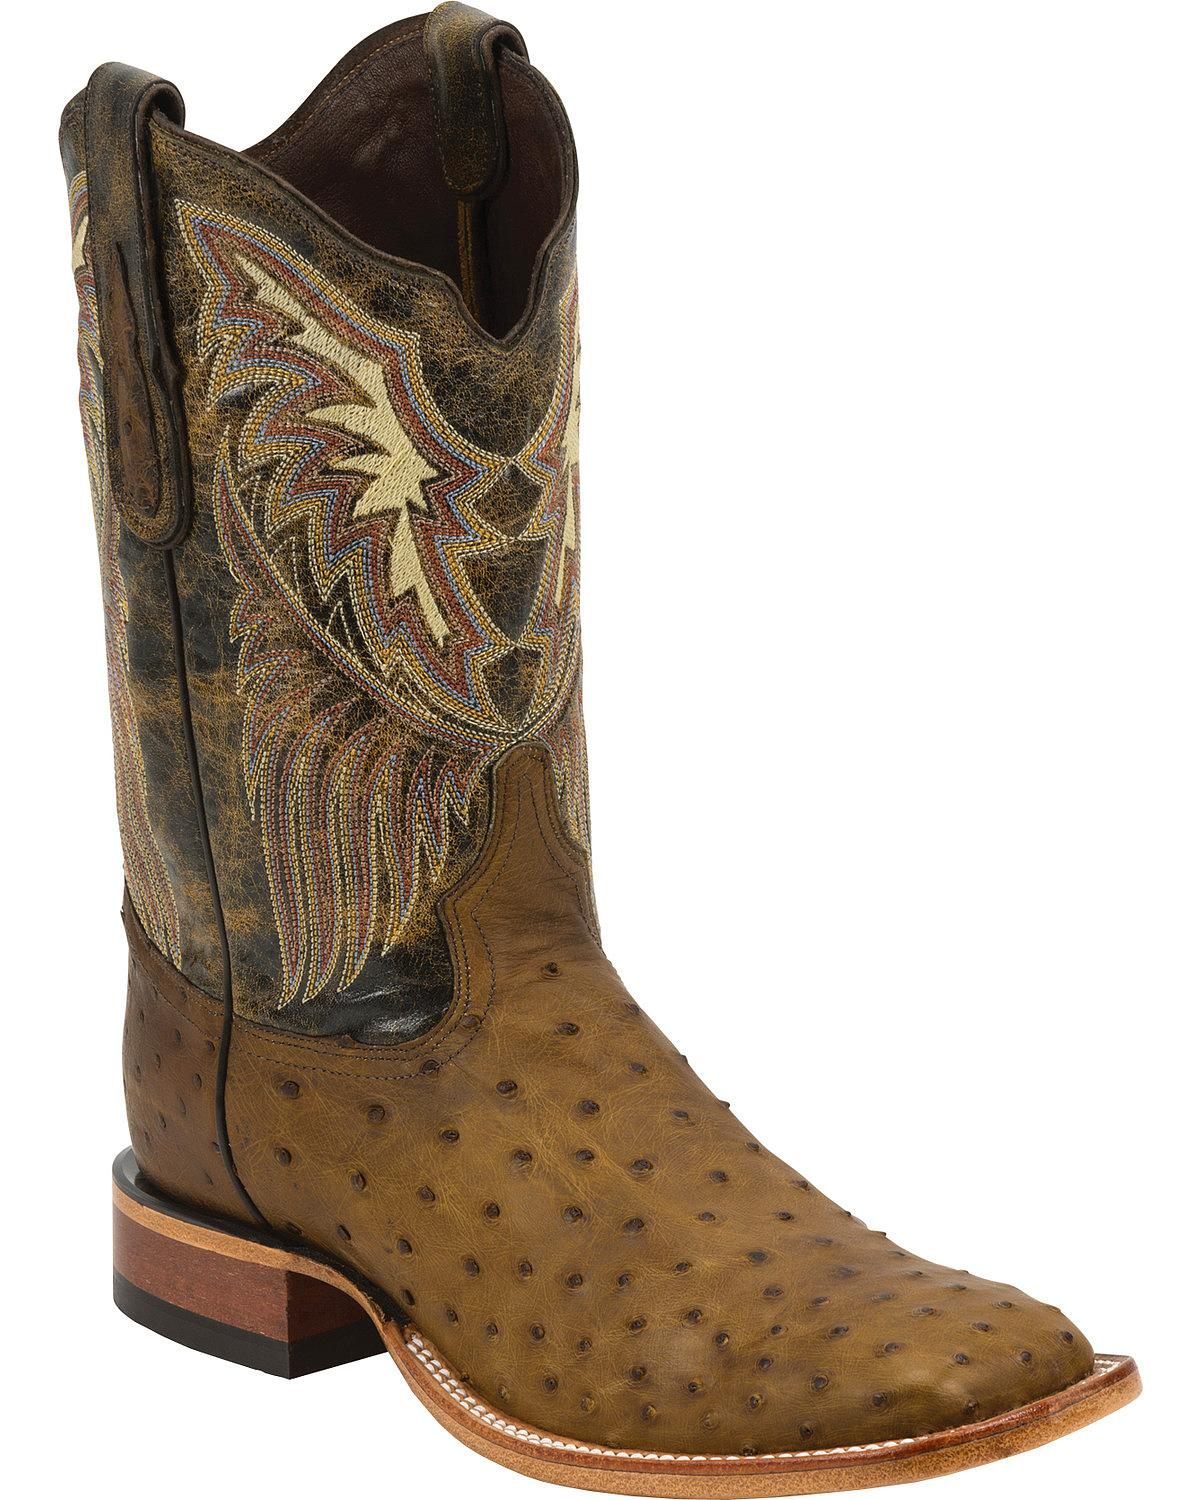 Tony Lama Men S Label Full Quill Ostrich Cowboy Boot